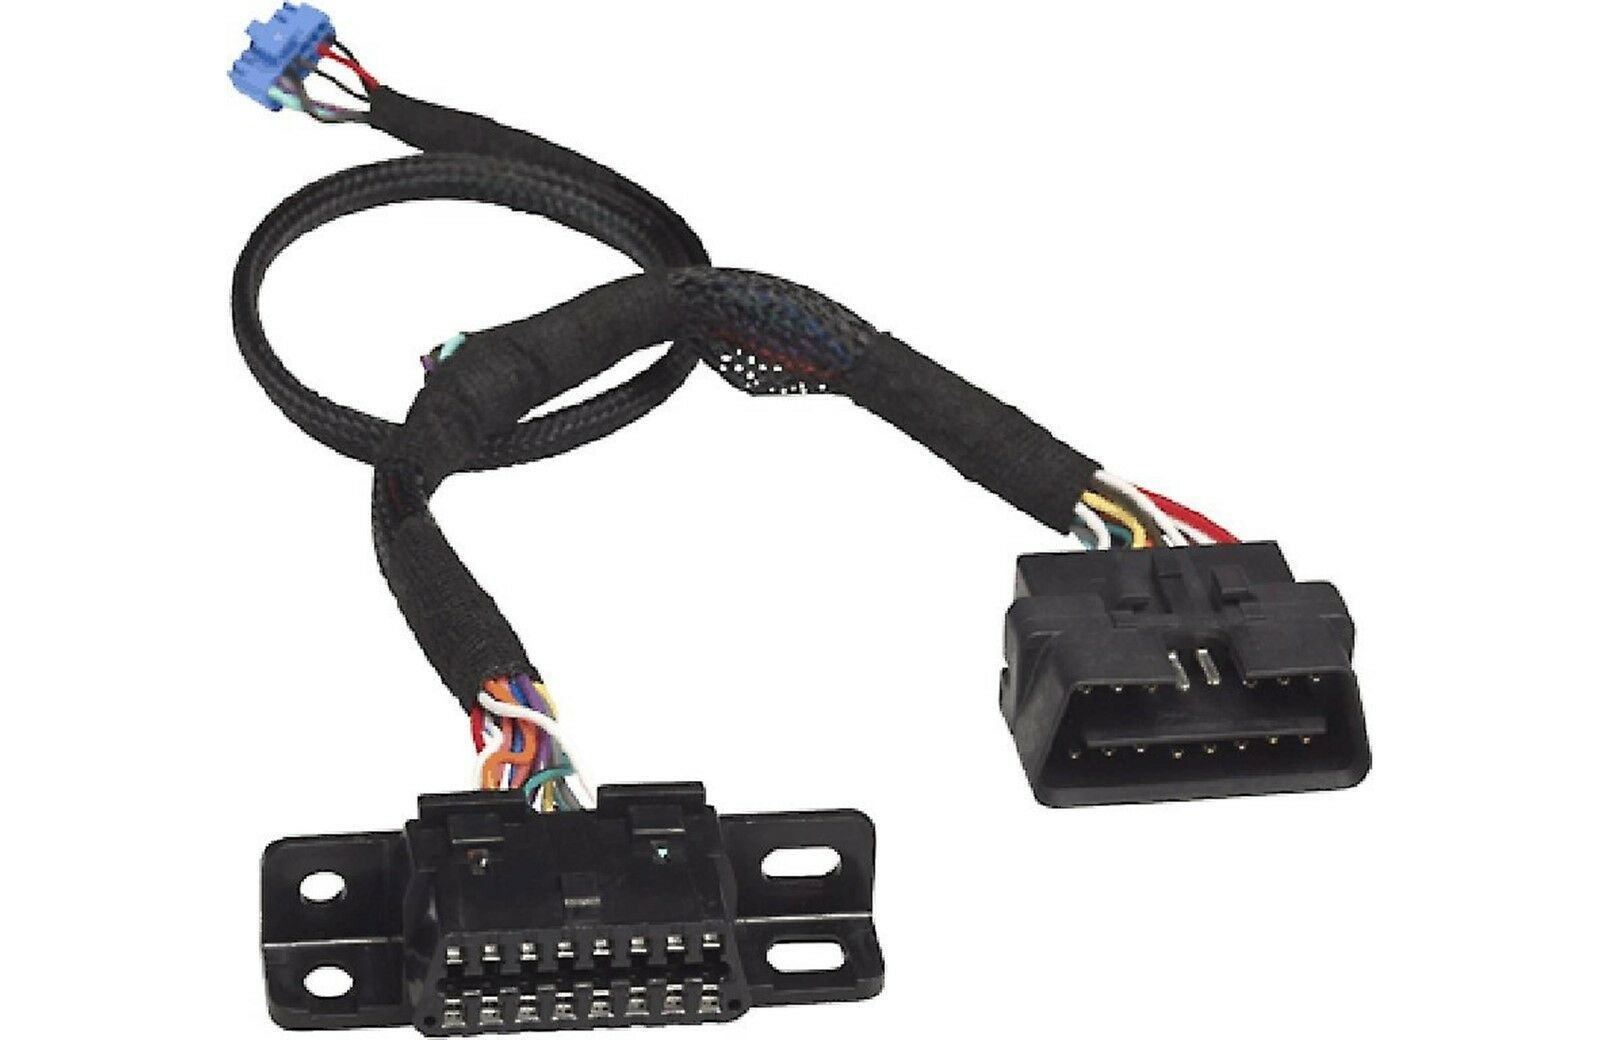 Directed OBDTHDGM1 Interface Harness